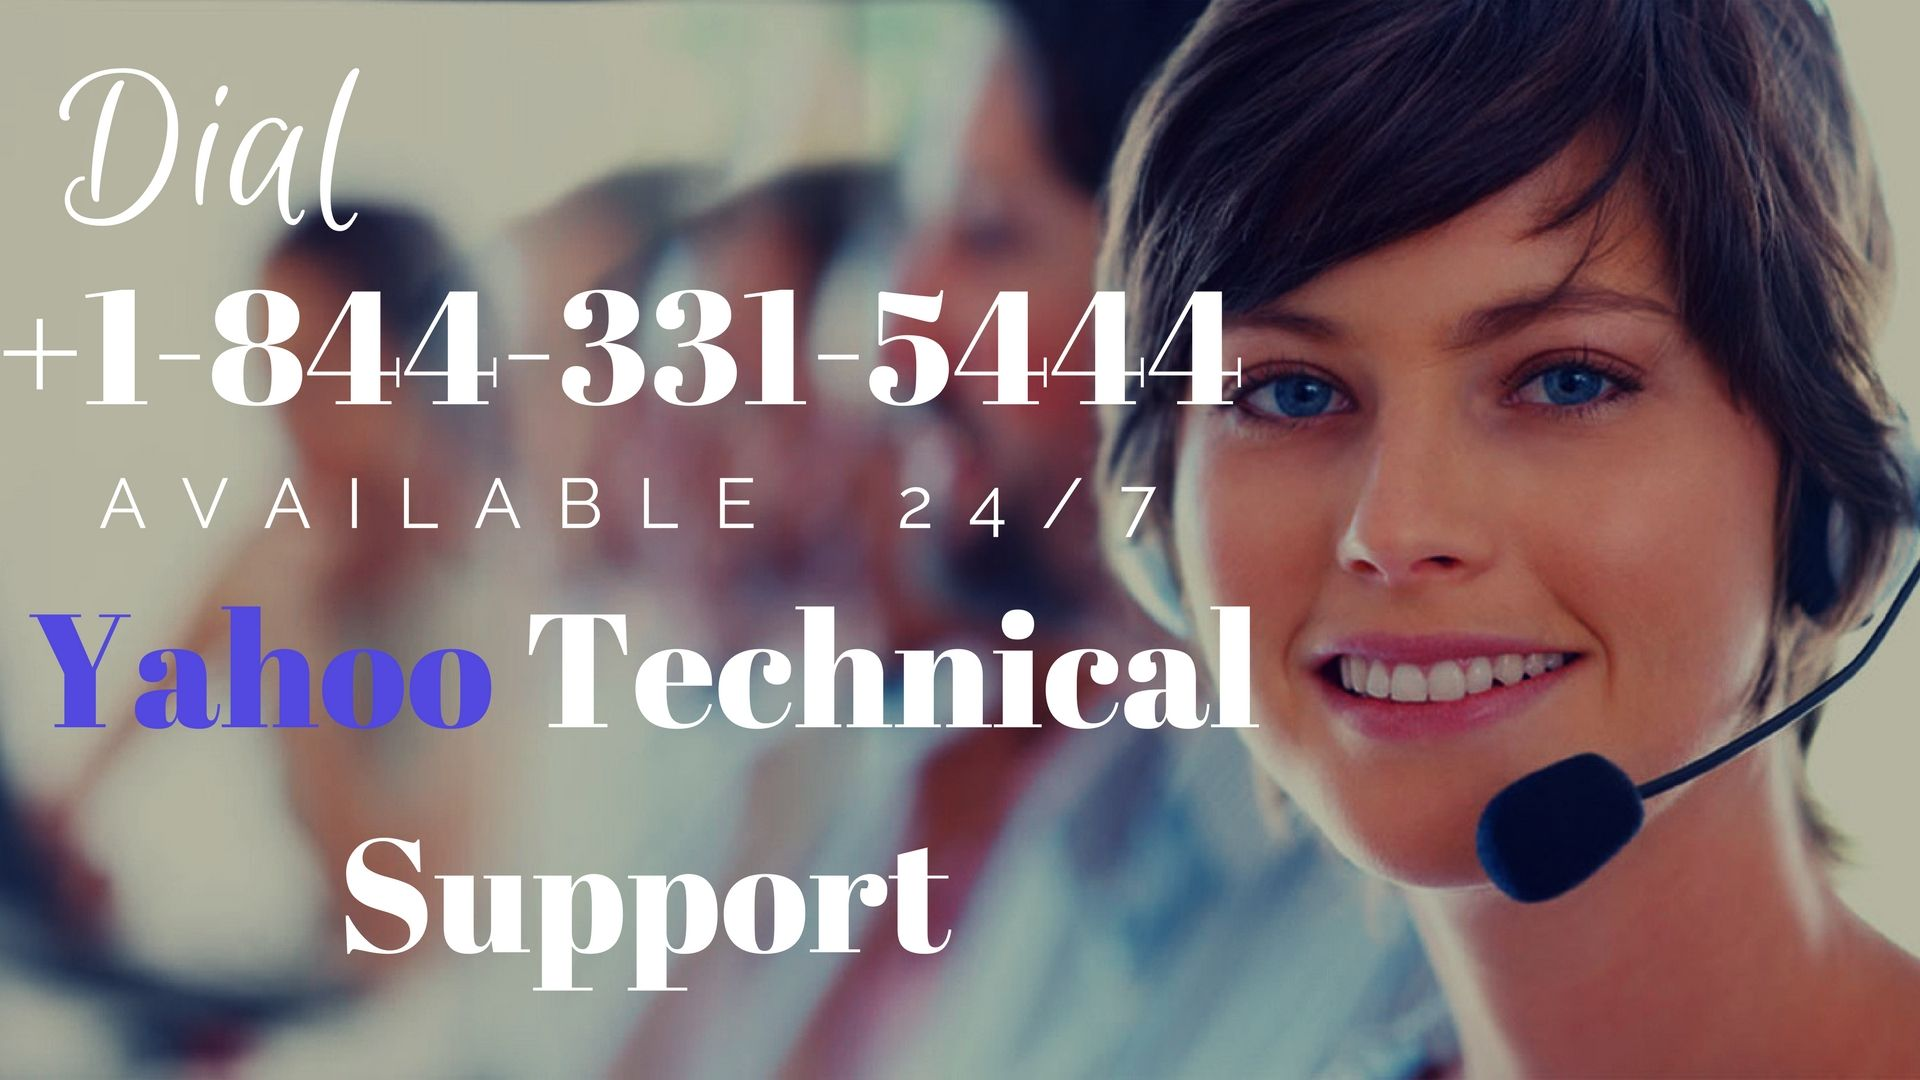 Yahoo Customer Service Support Number +18443315444 We